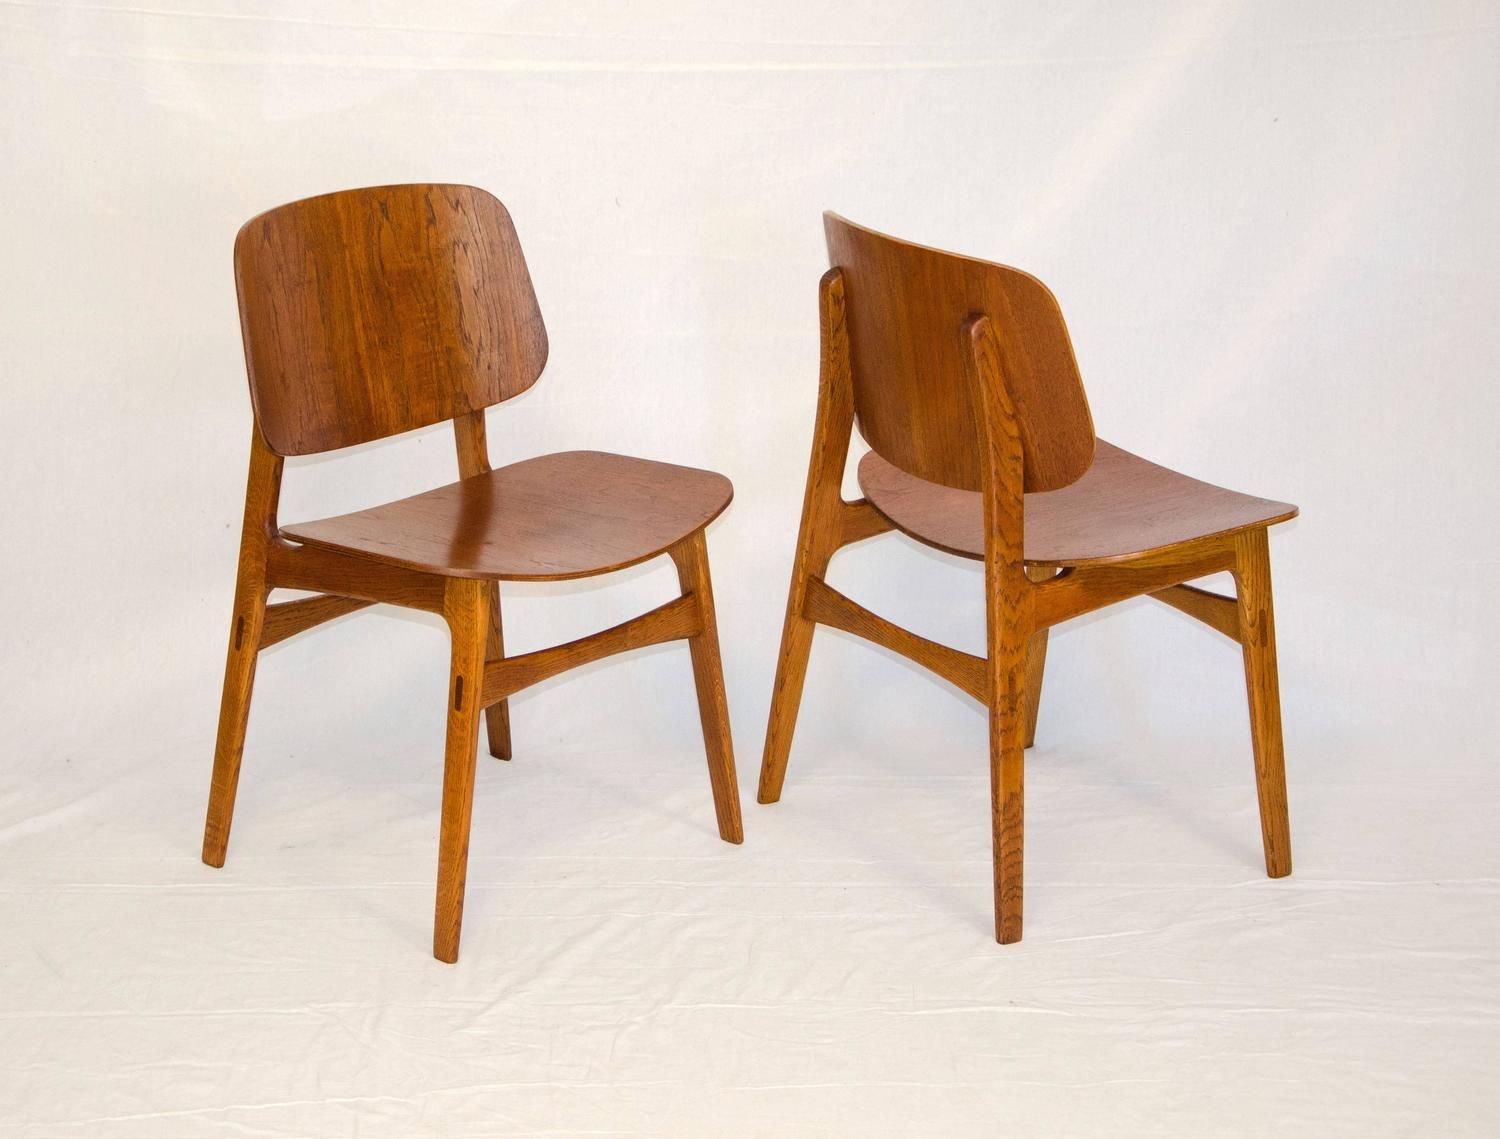 Commercial Dining Room Chairs Captivating Set Of Six Bent Ply Teak And Oak Chairsbørge Mogensen  Teak Design Decoration